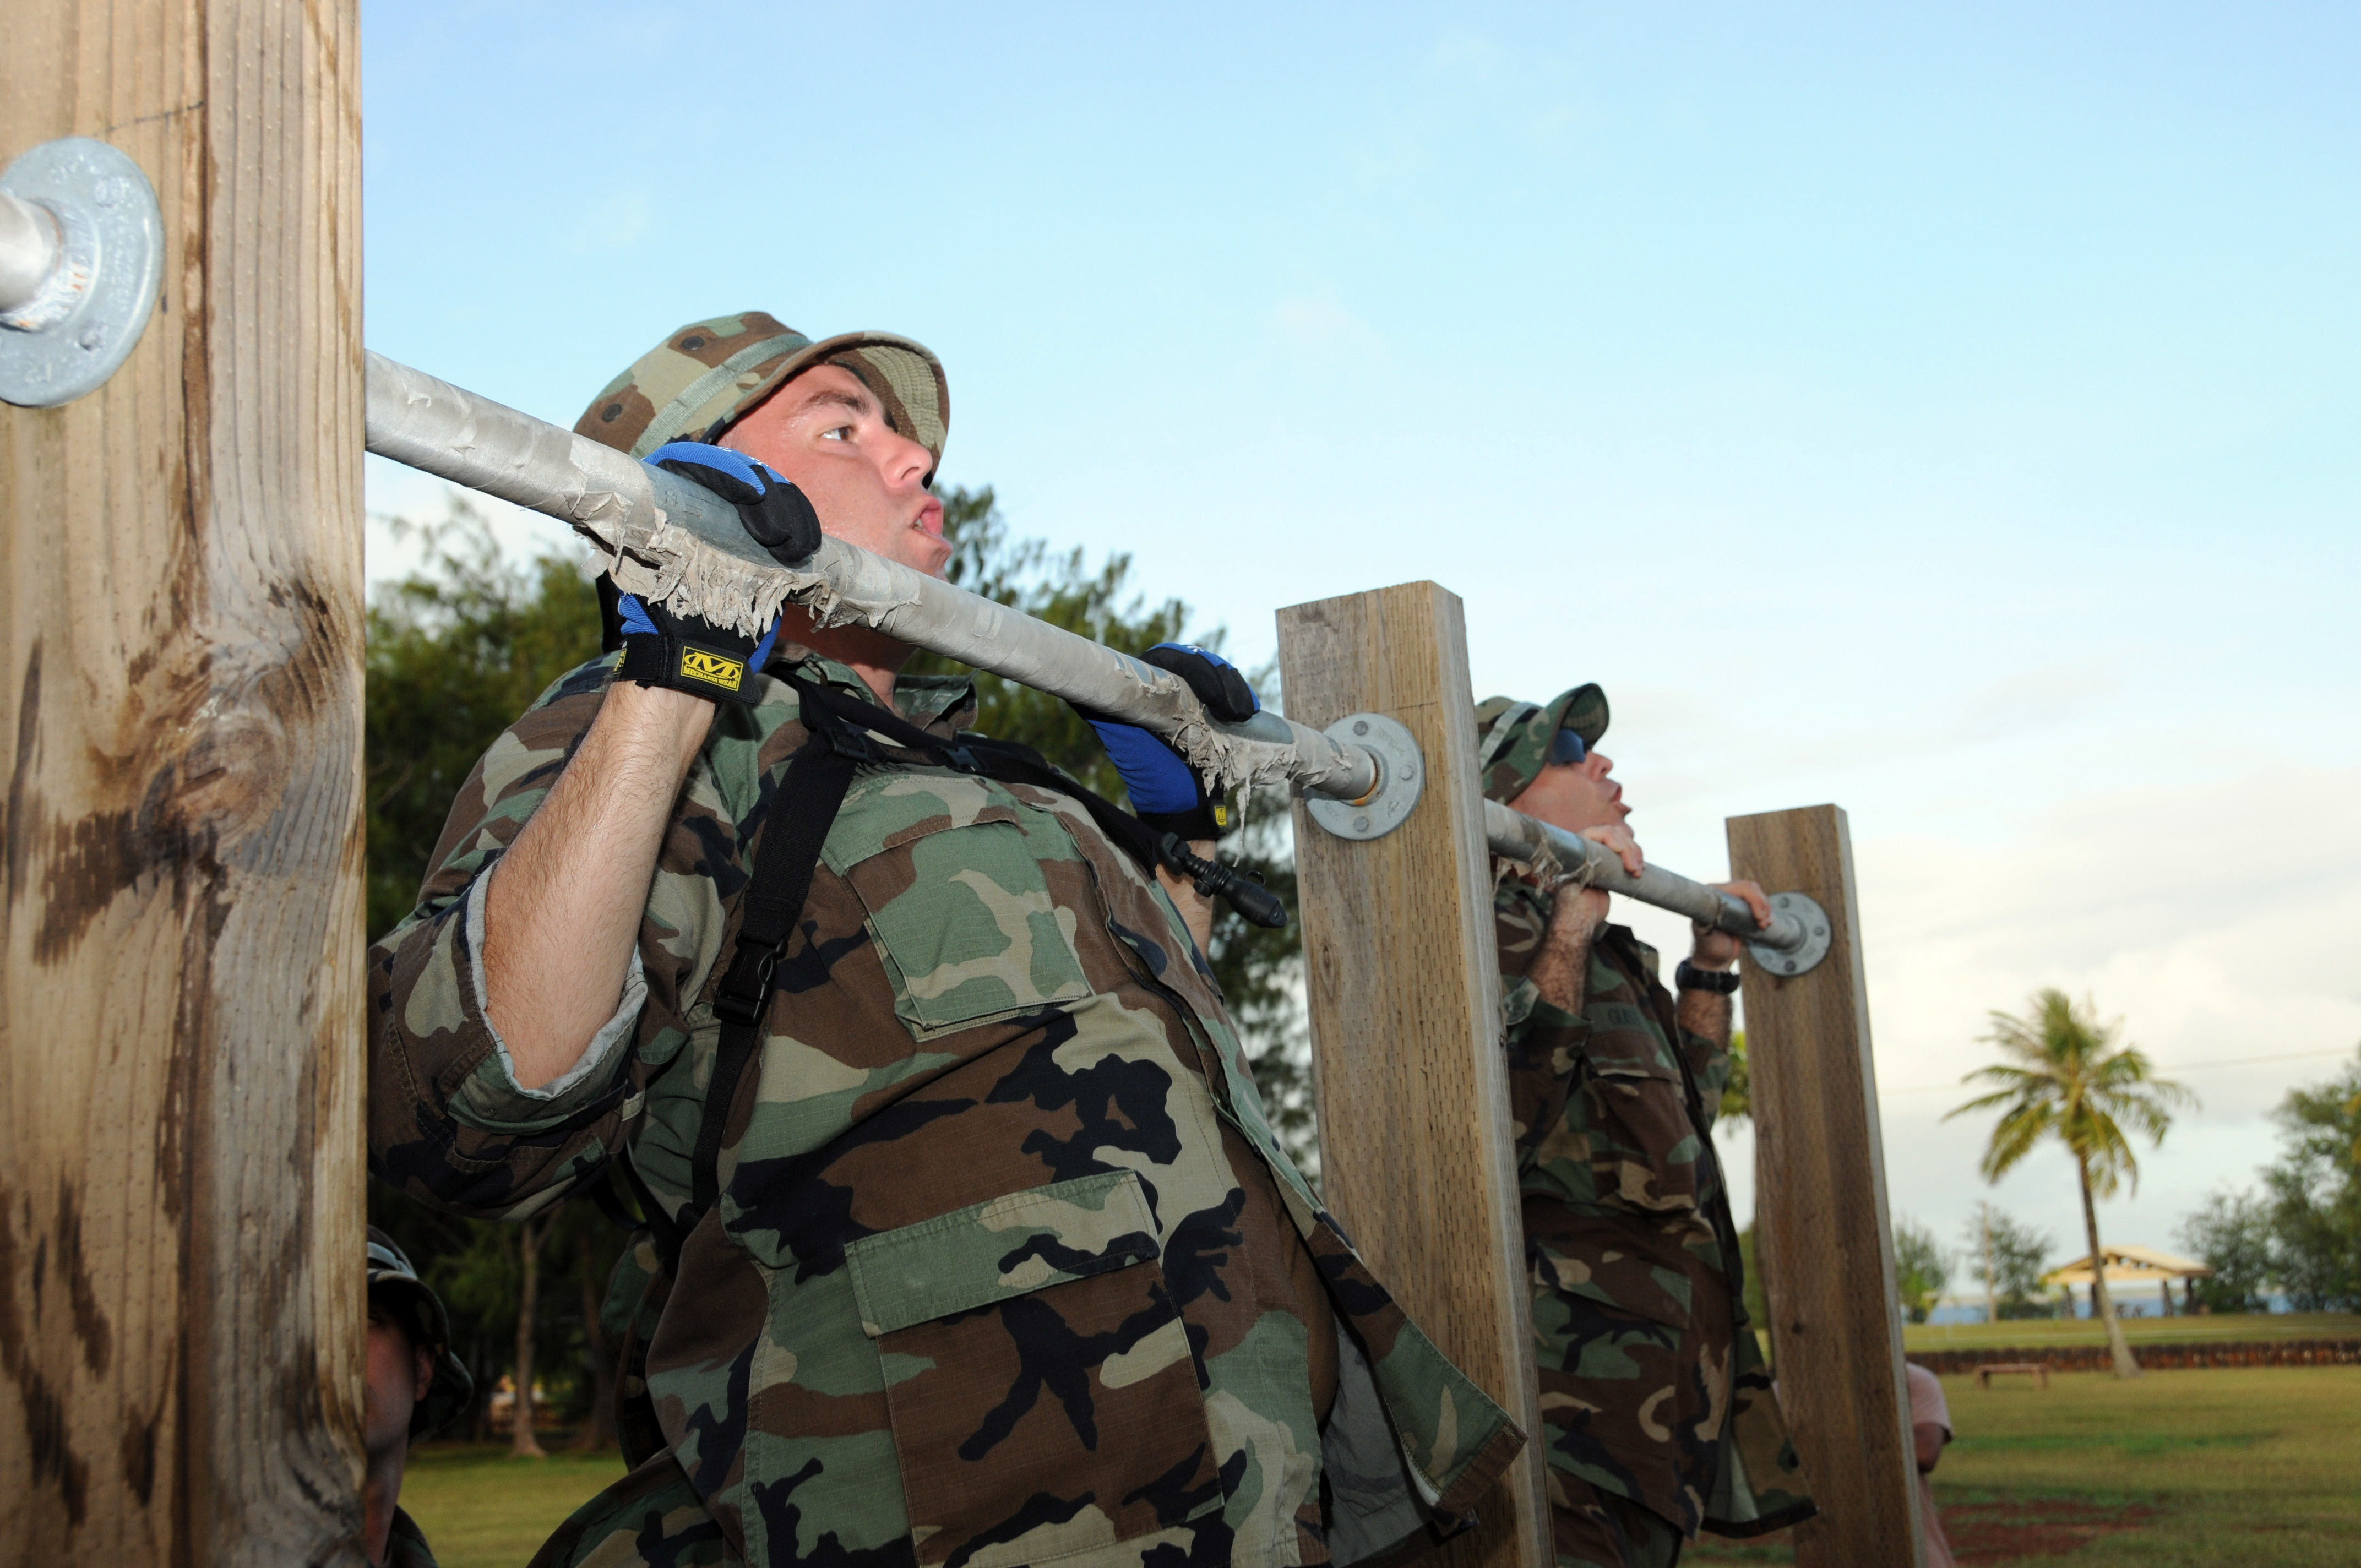 File:US Navy 100115-N-1906L-003 Master-at-Arms 3rd Class Chris ...